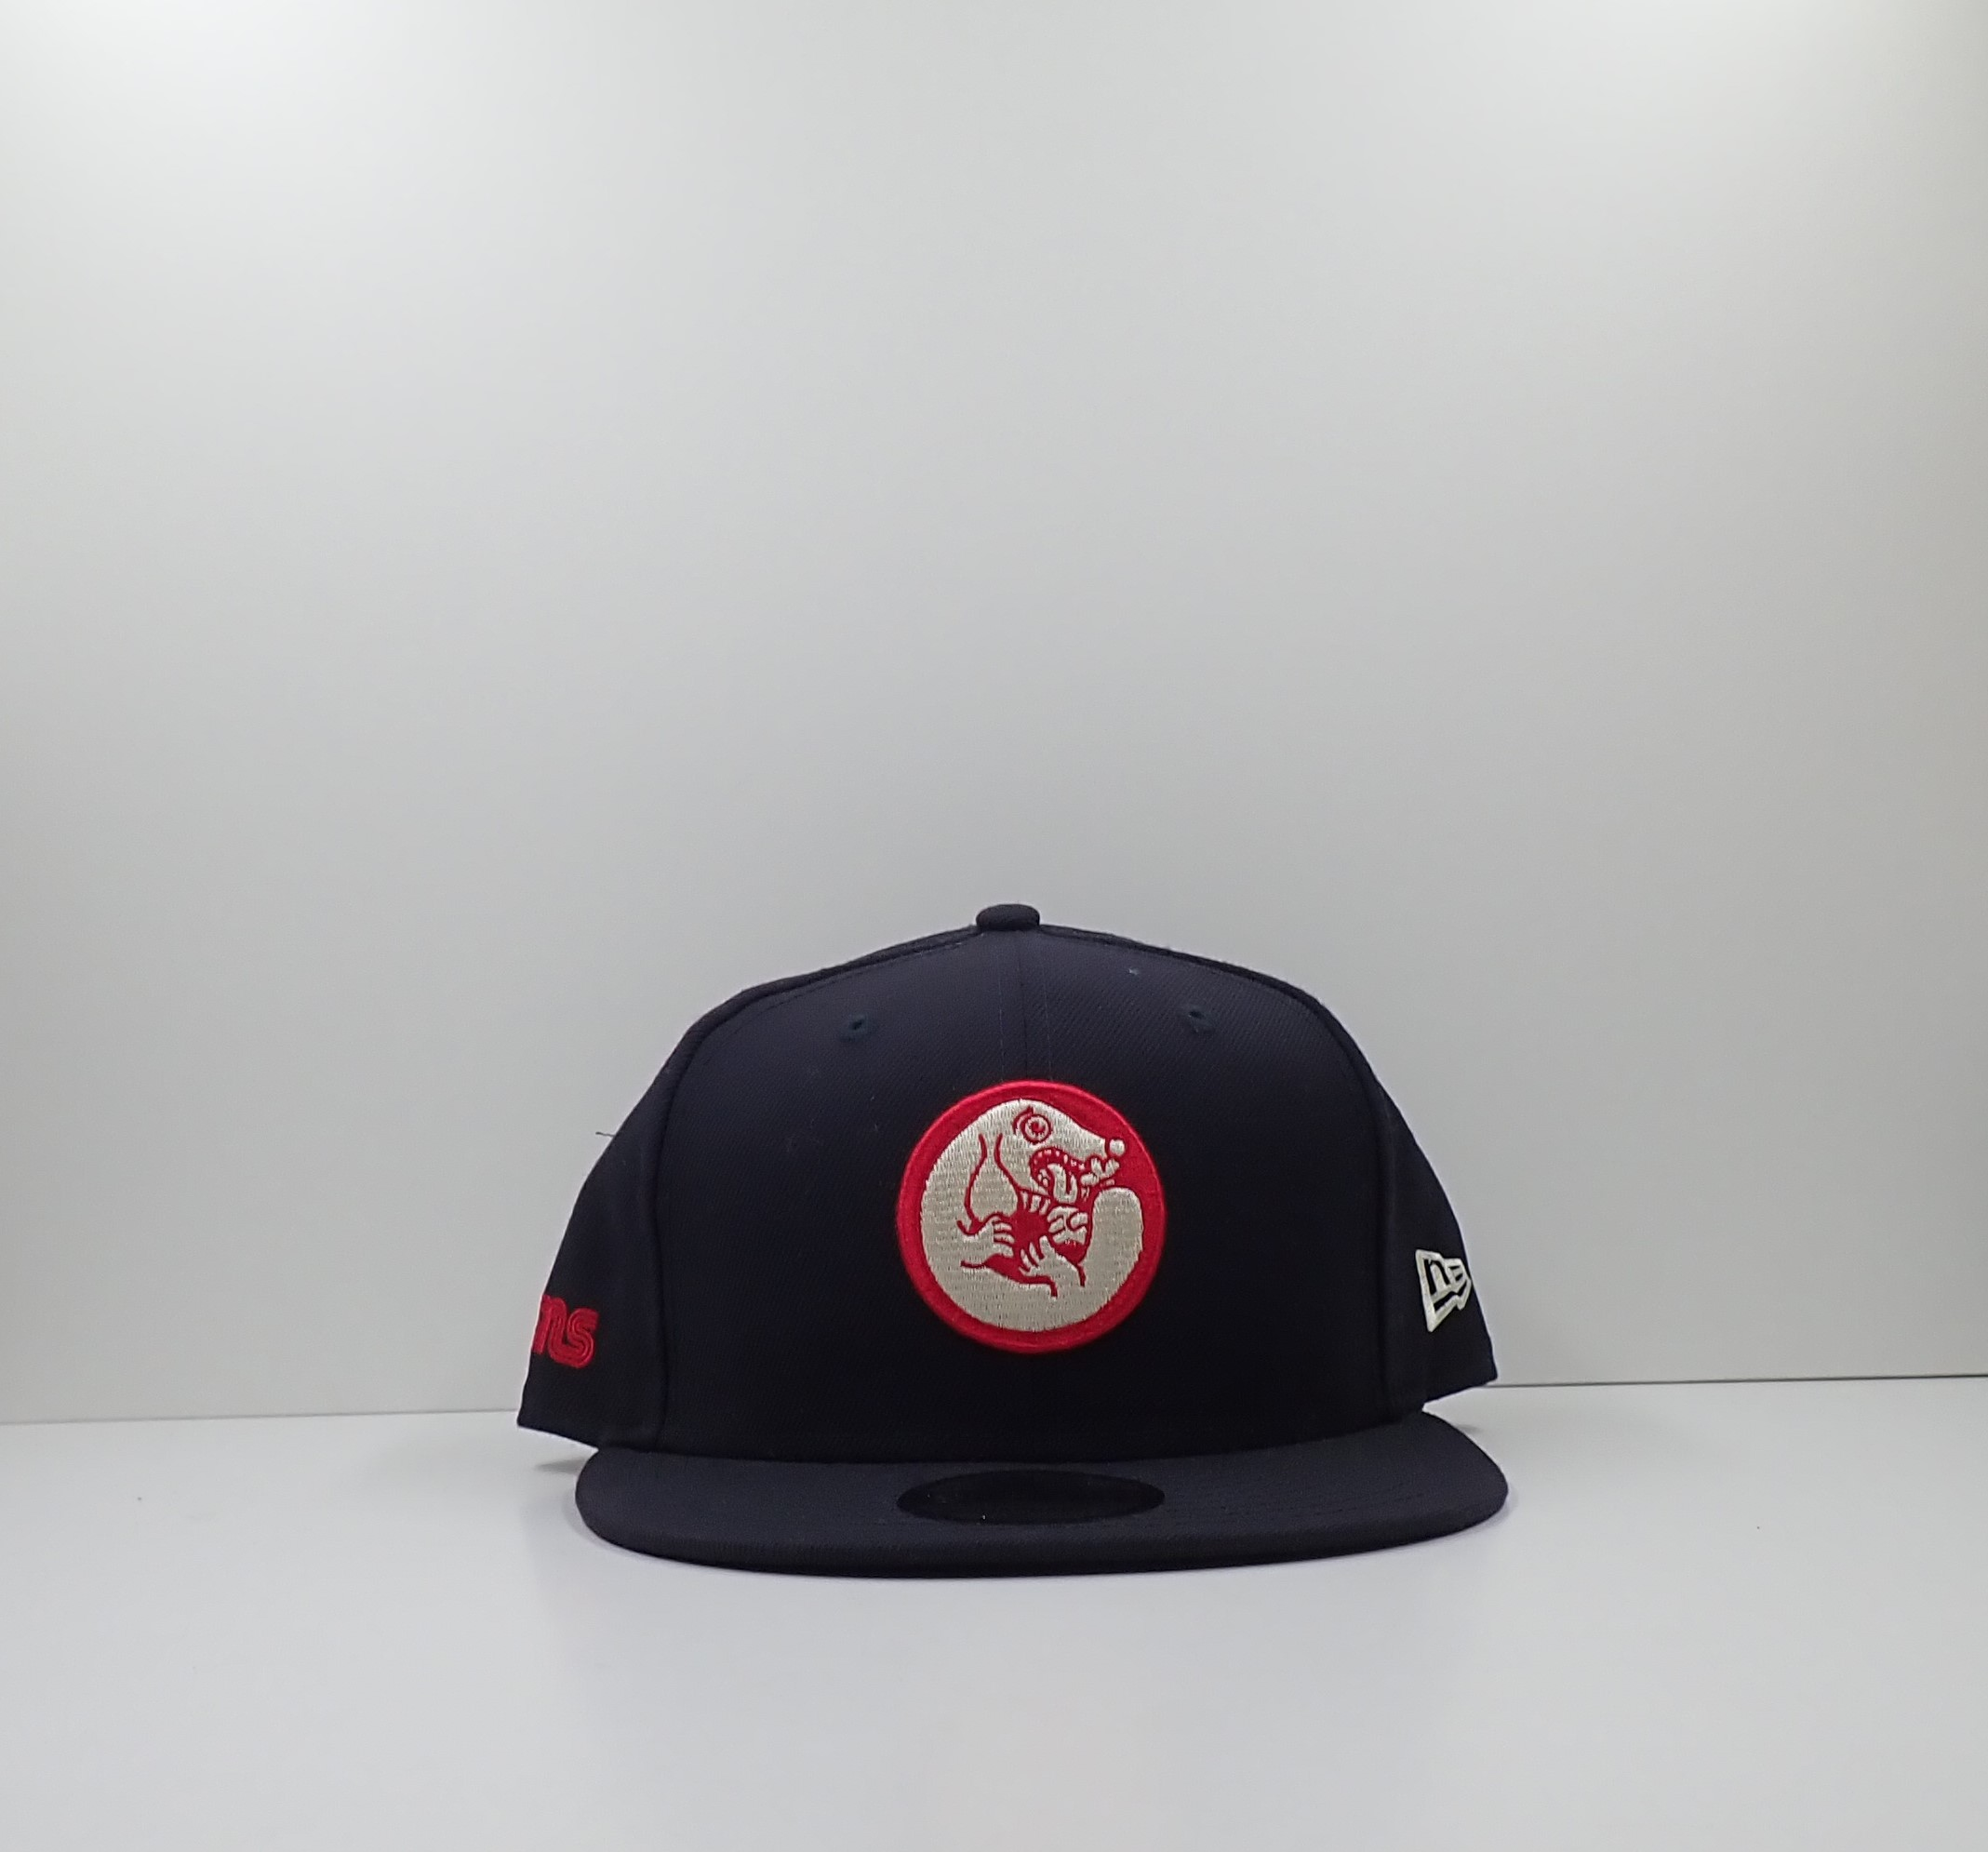 SNS x Dogfood x New Era Cap